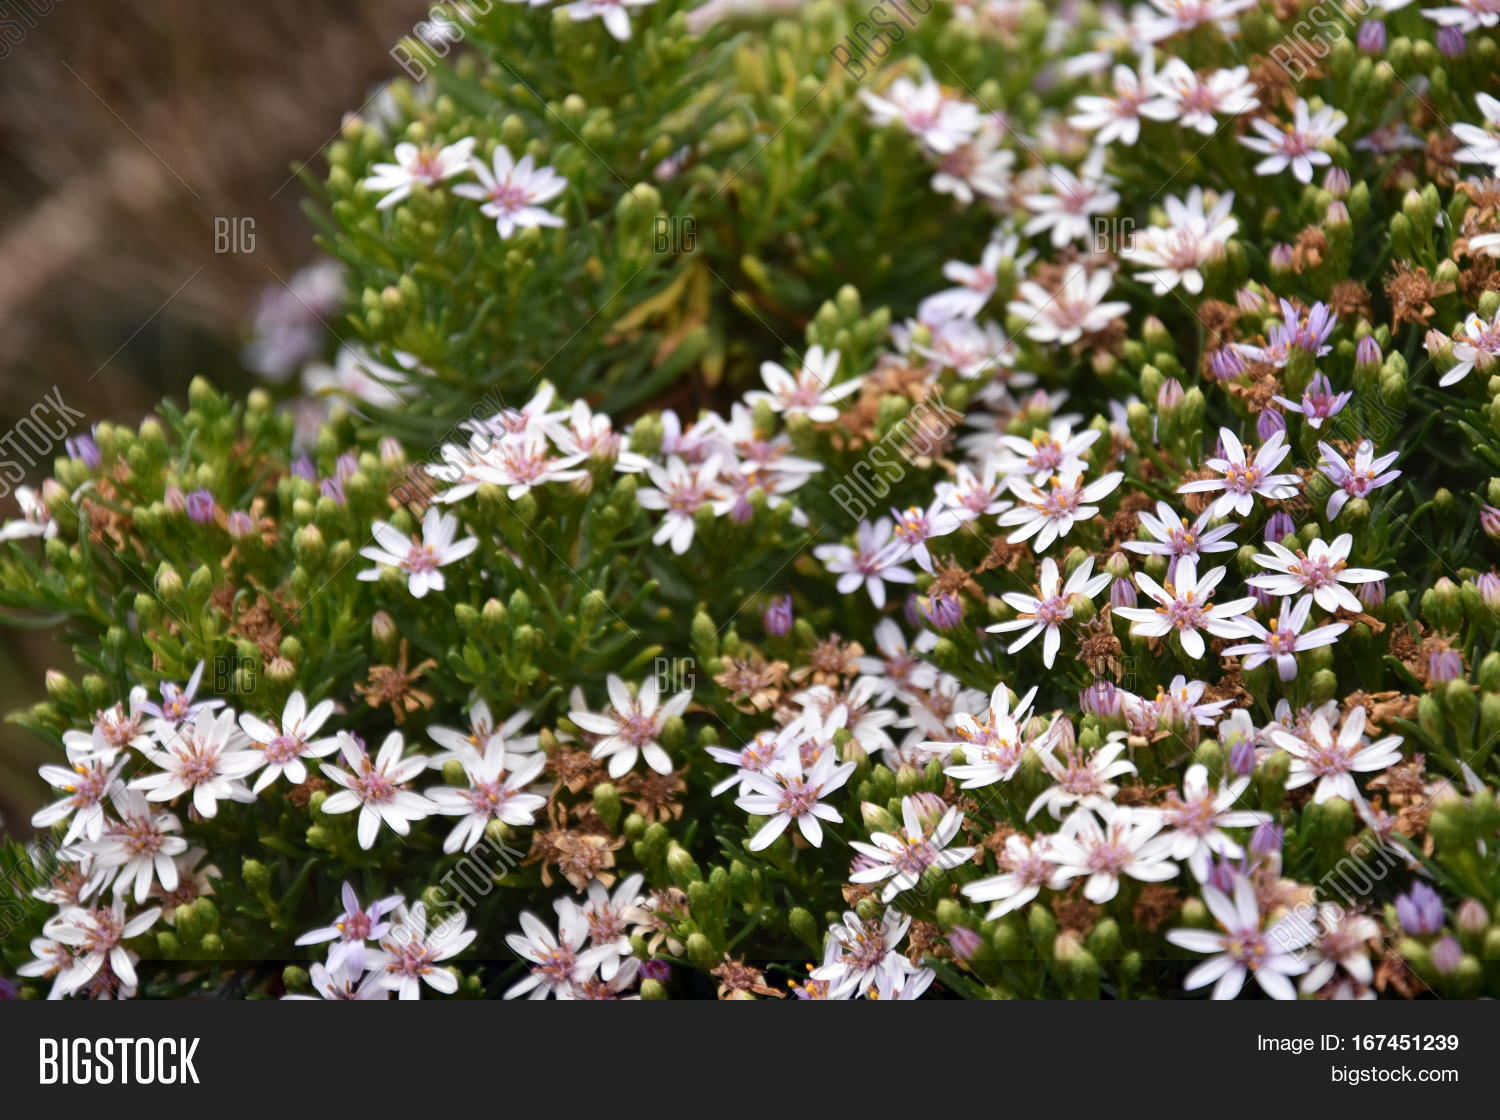 Cluster Wild Flowers Image Photo Free Trial Bigstock